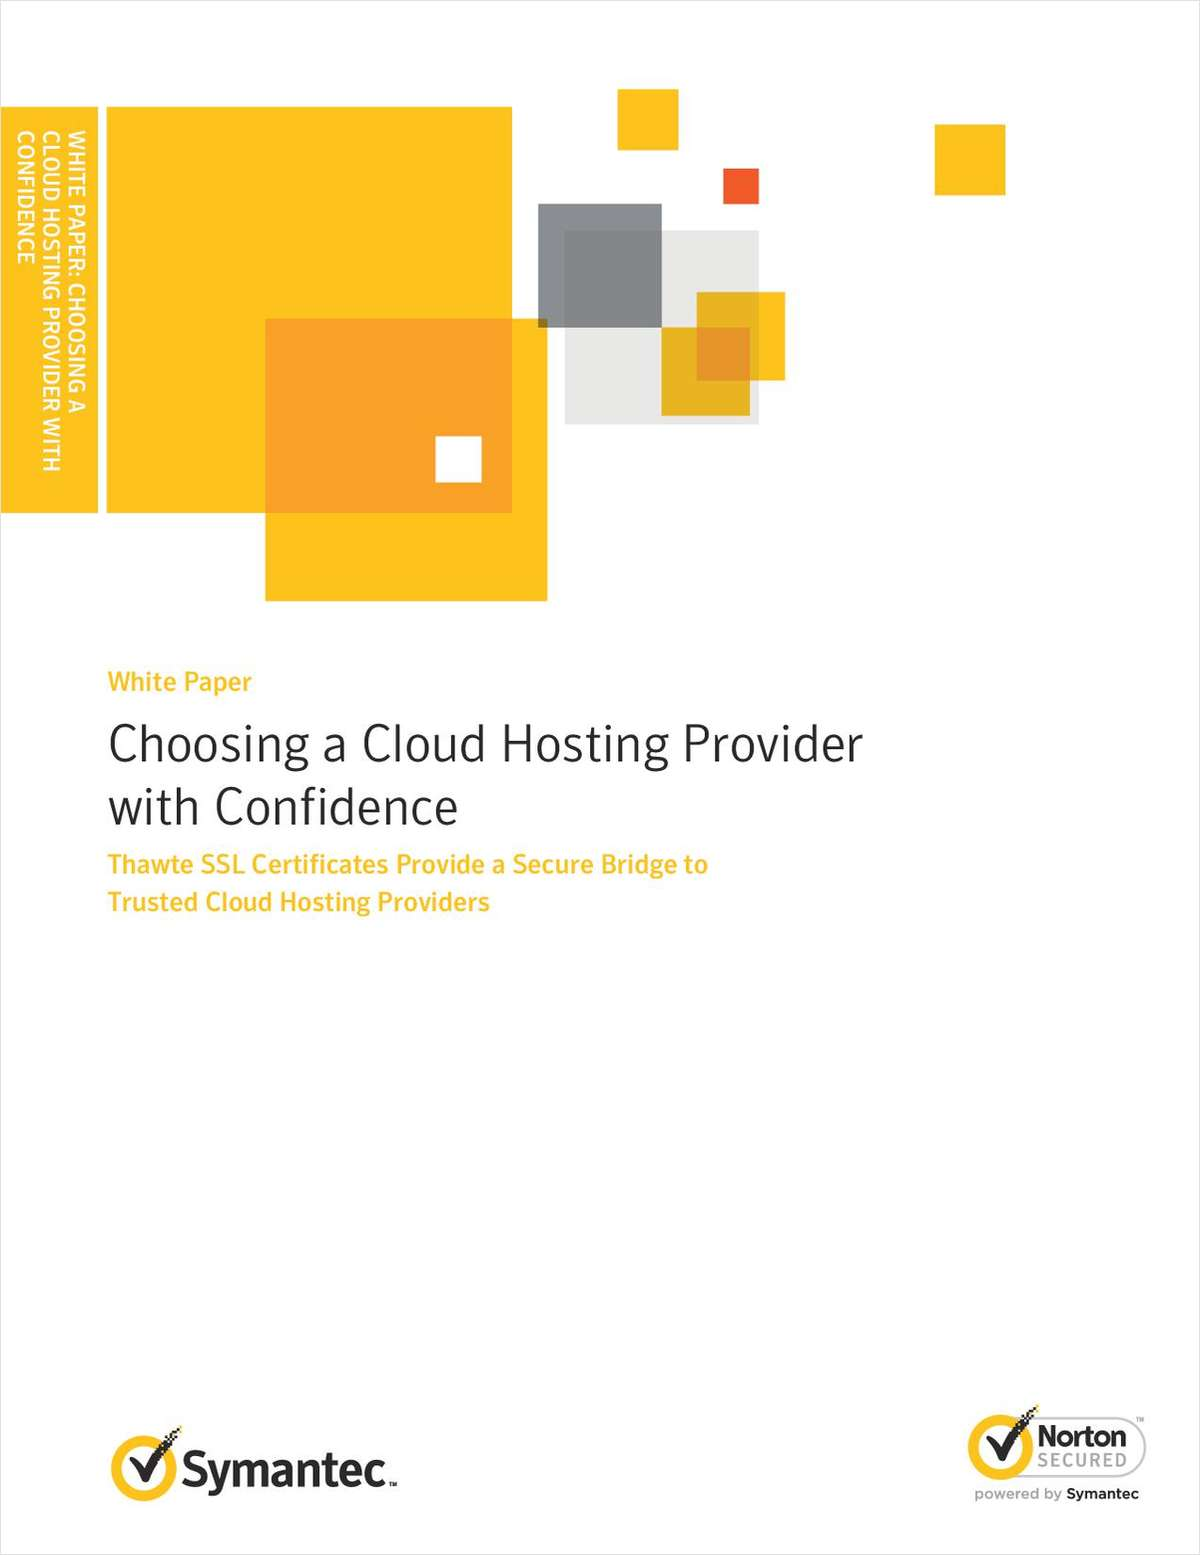 Choosing a Cloud Hosting Provider with Confidence: Symantec SSL Certificates Provide a Secure Bridge to Trusted Cloud Hosting Providers